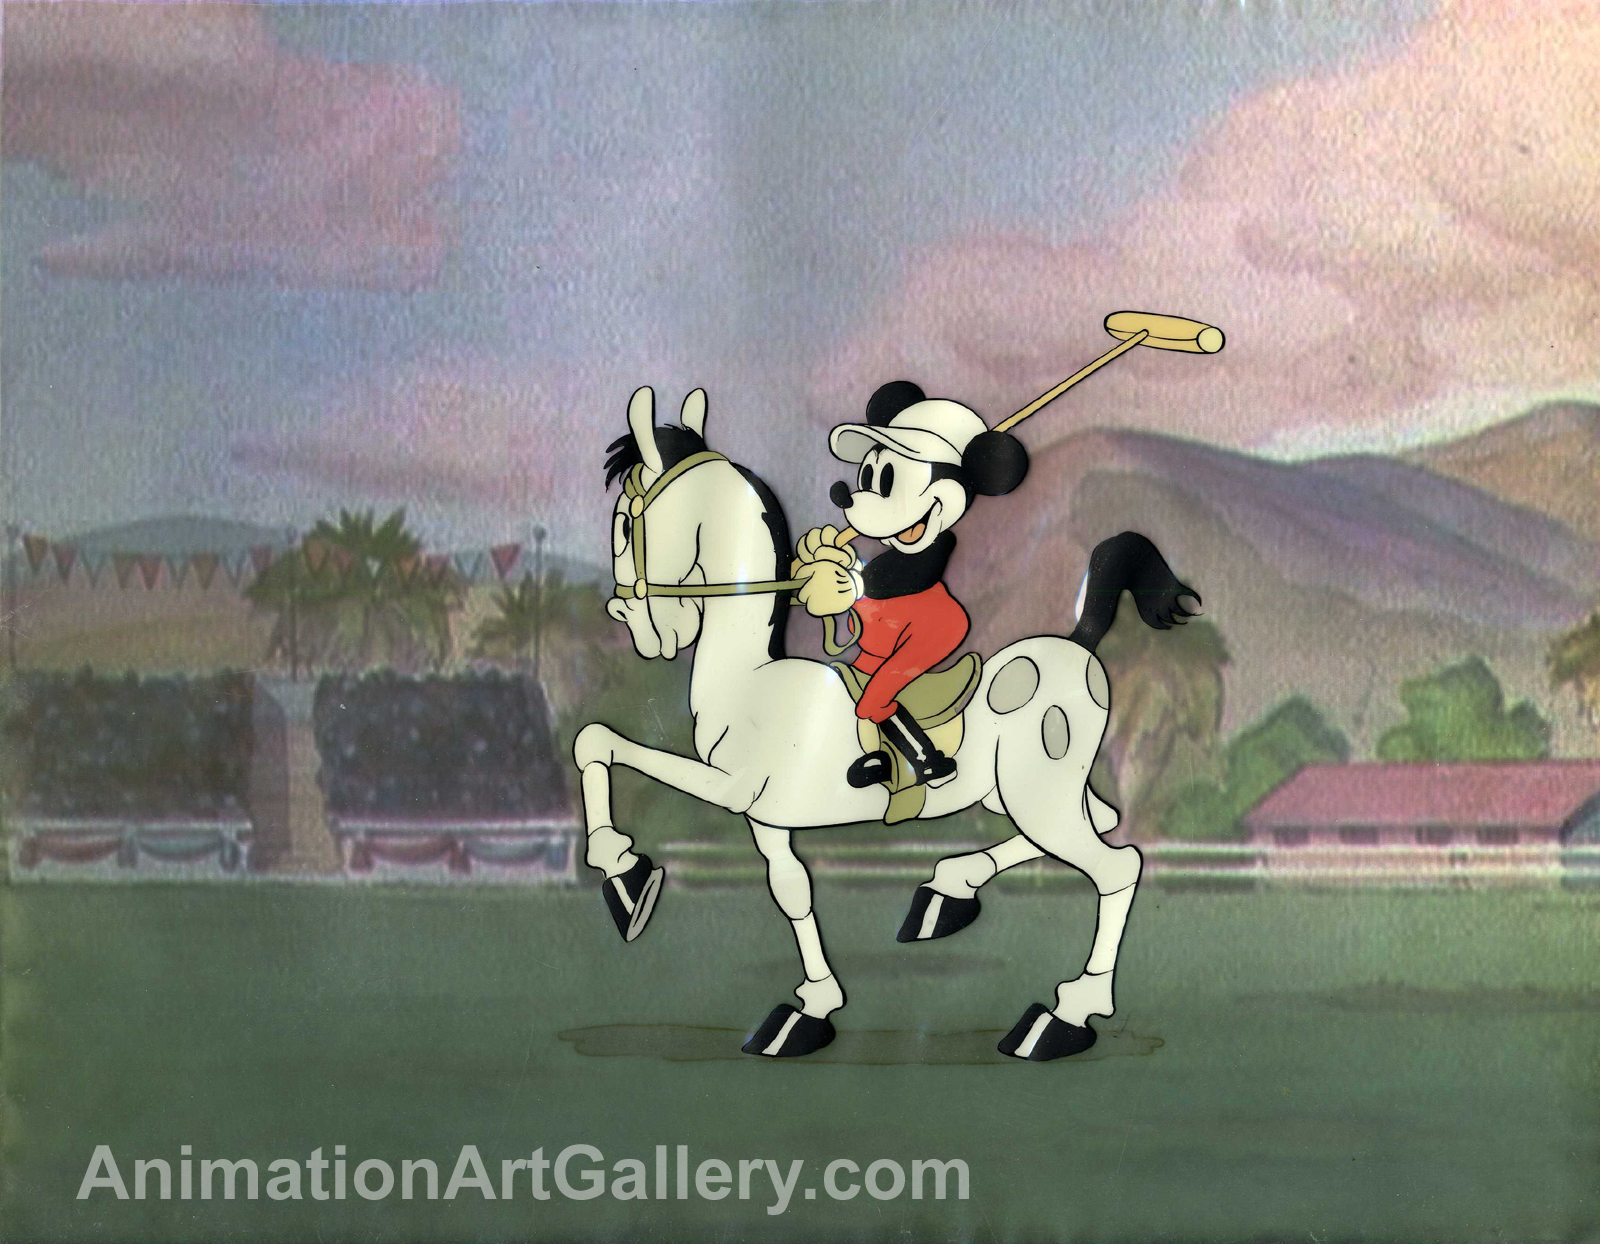 Original Production Cel of Mickey Mouse from Mickey's Polo Team